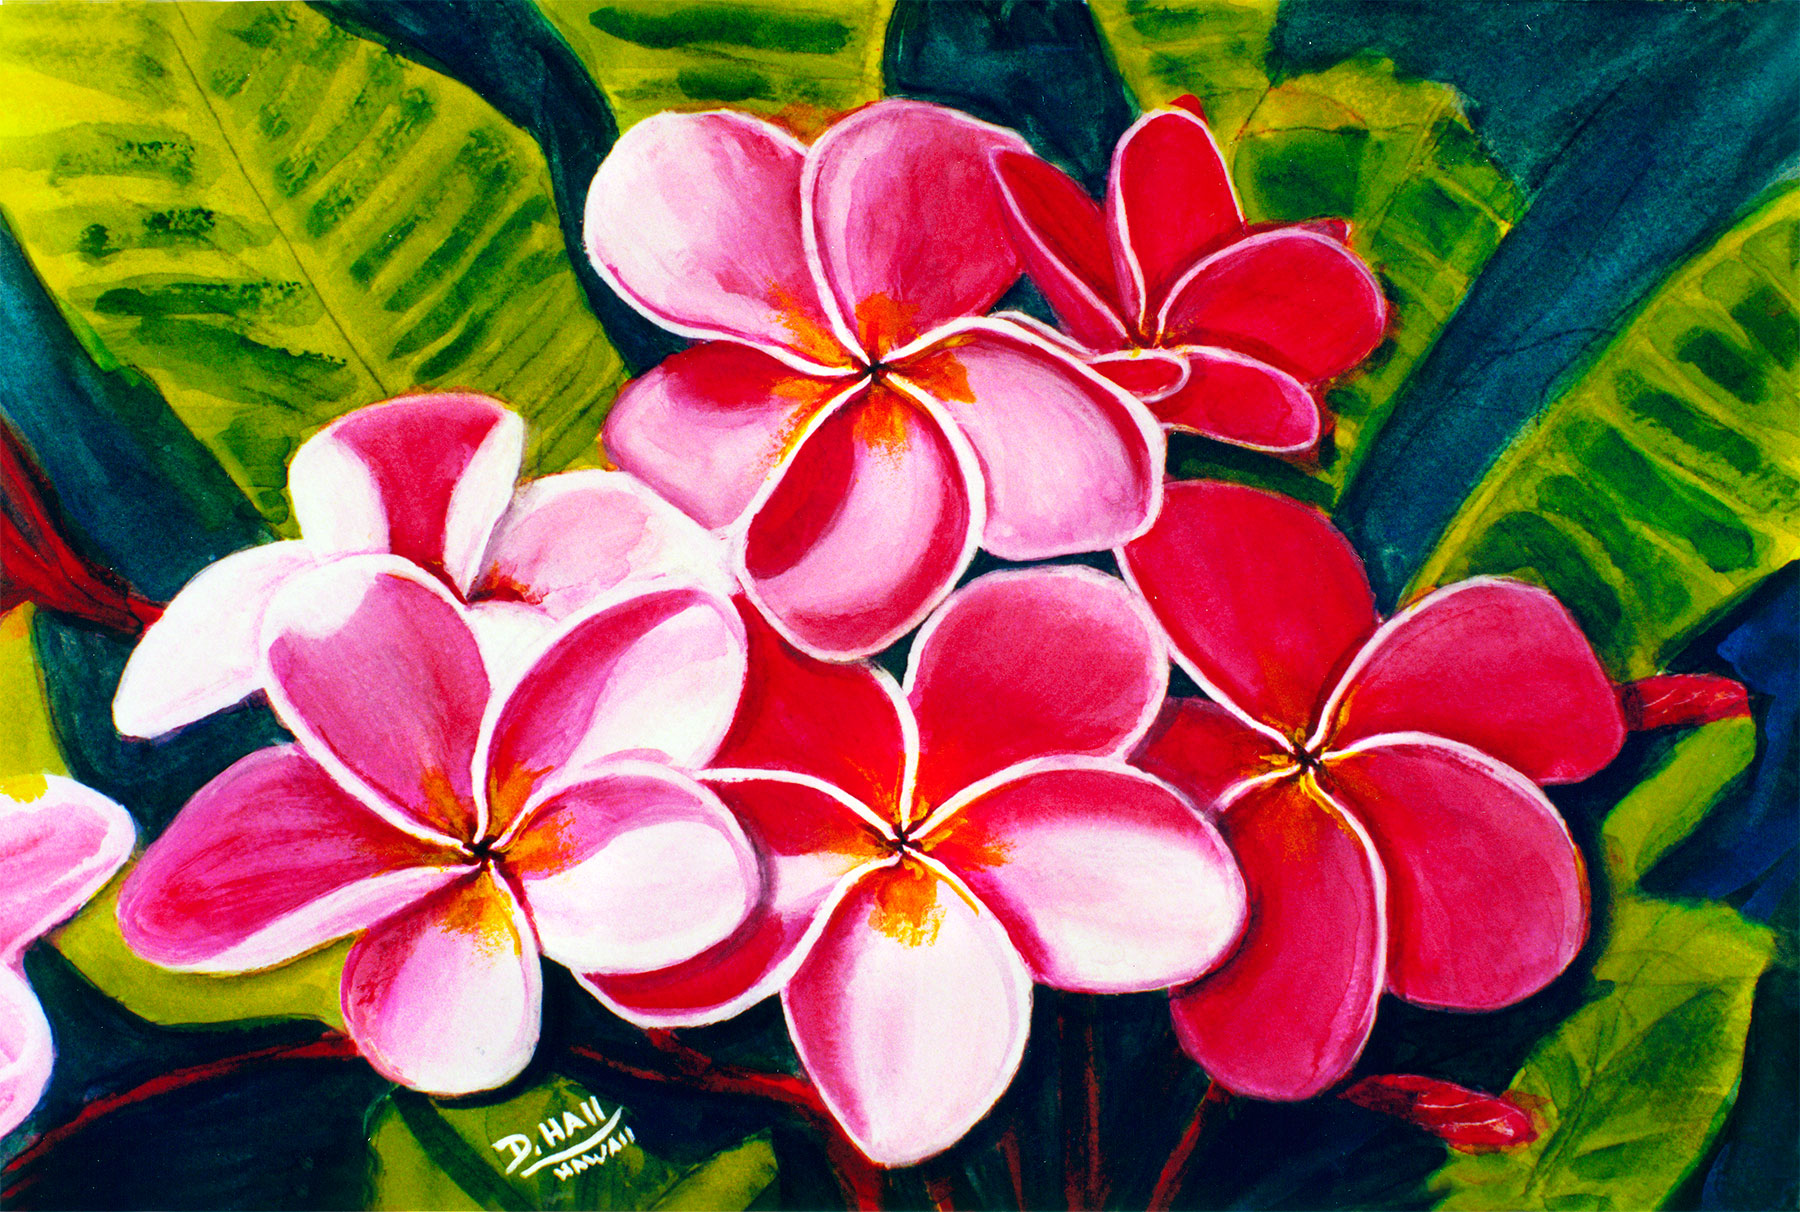 Hawaii plumeria flowers art paintings for sale hawaiian plumeria plumeria flower hawaii tropical flowes art prints painting by hawaii artist donald k izmirmasajfo Choice Image